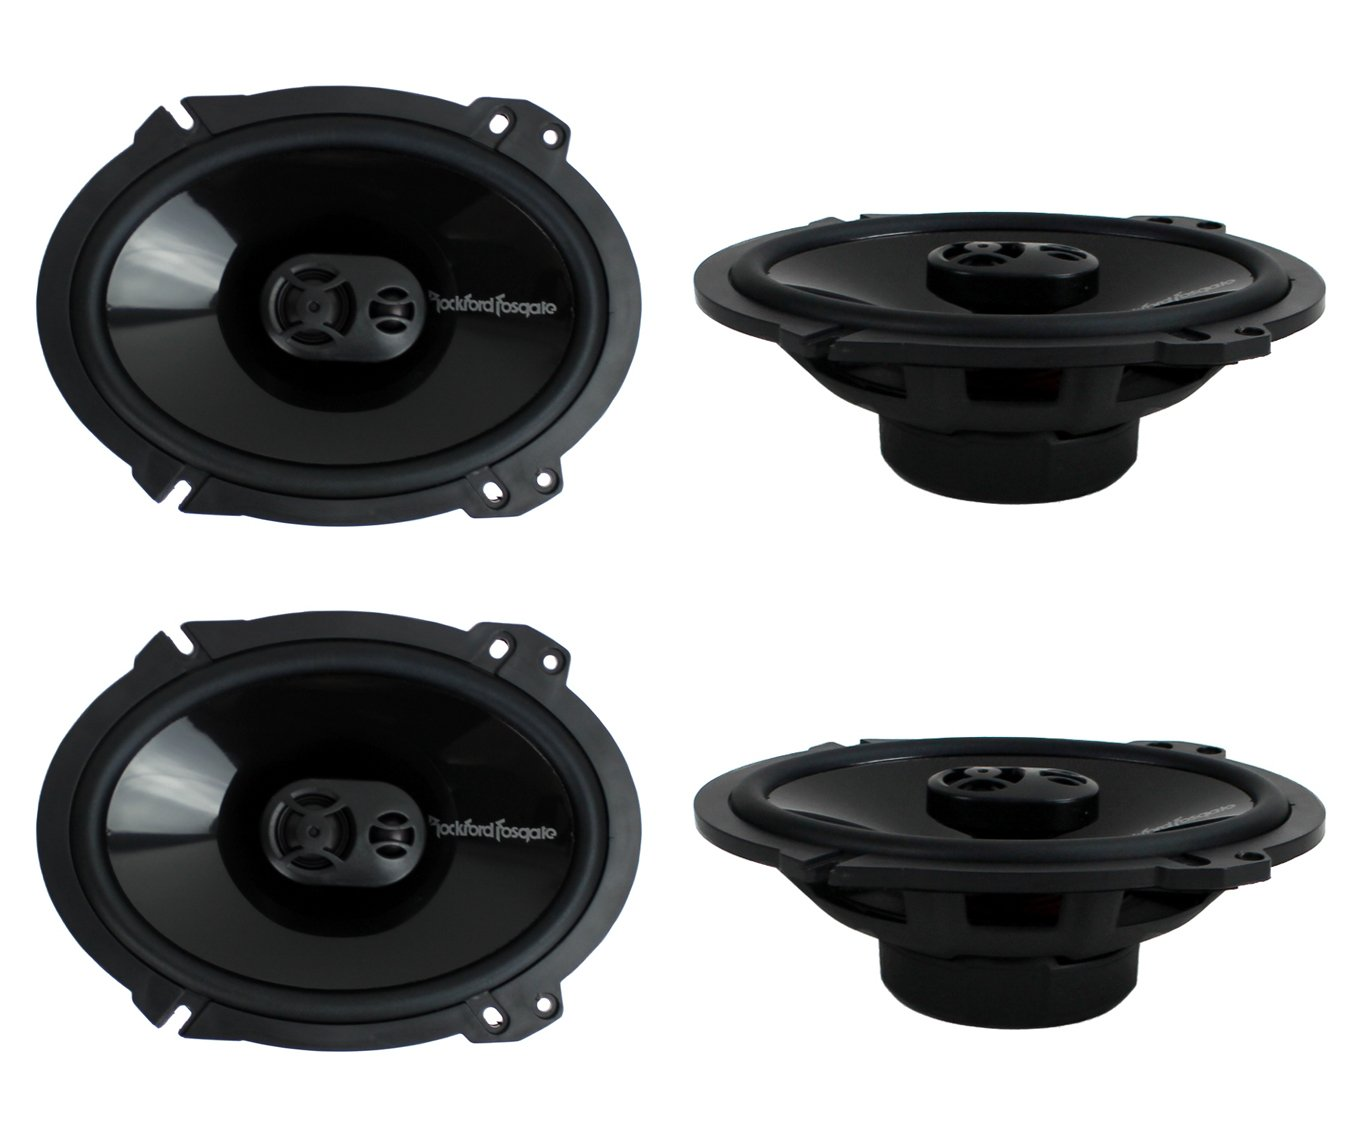 4) New Rockford Fosgate P1683 6x8'' 260 Watt 3 Way Car Coaxial Speakers Audio by Rockford Fosgate